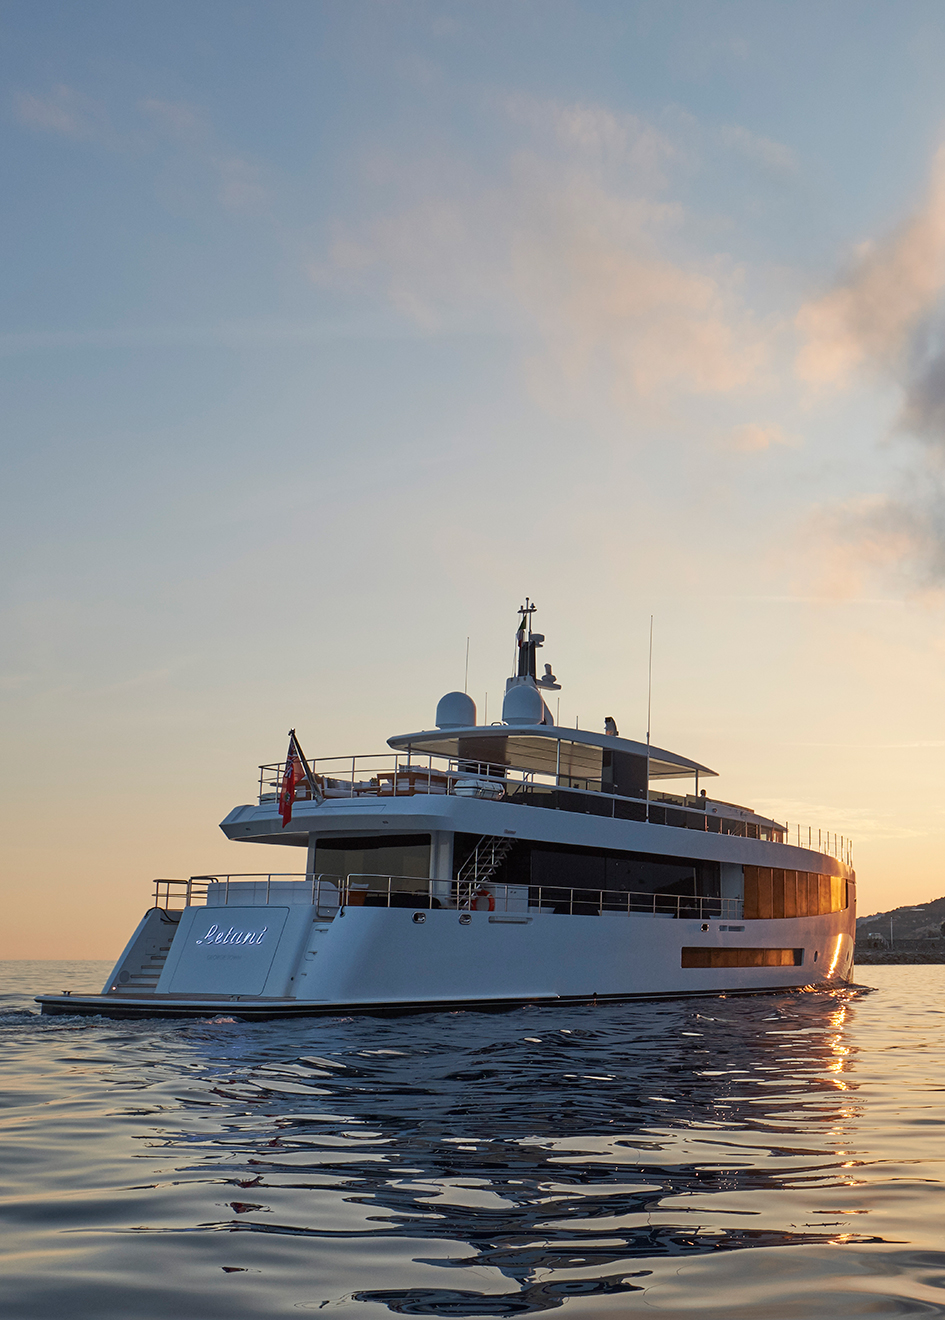 the-feadship-superyacht-letani-at-sunset